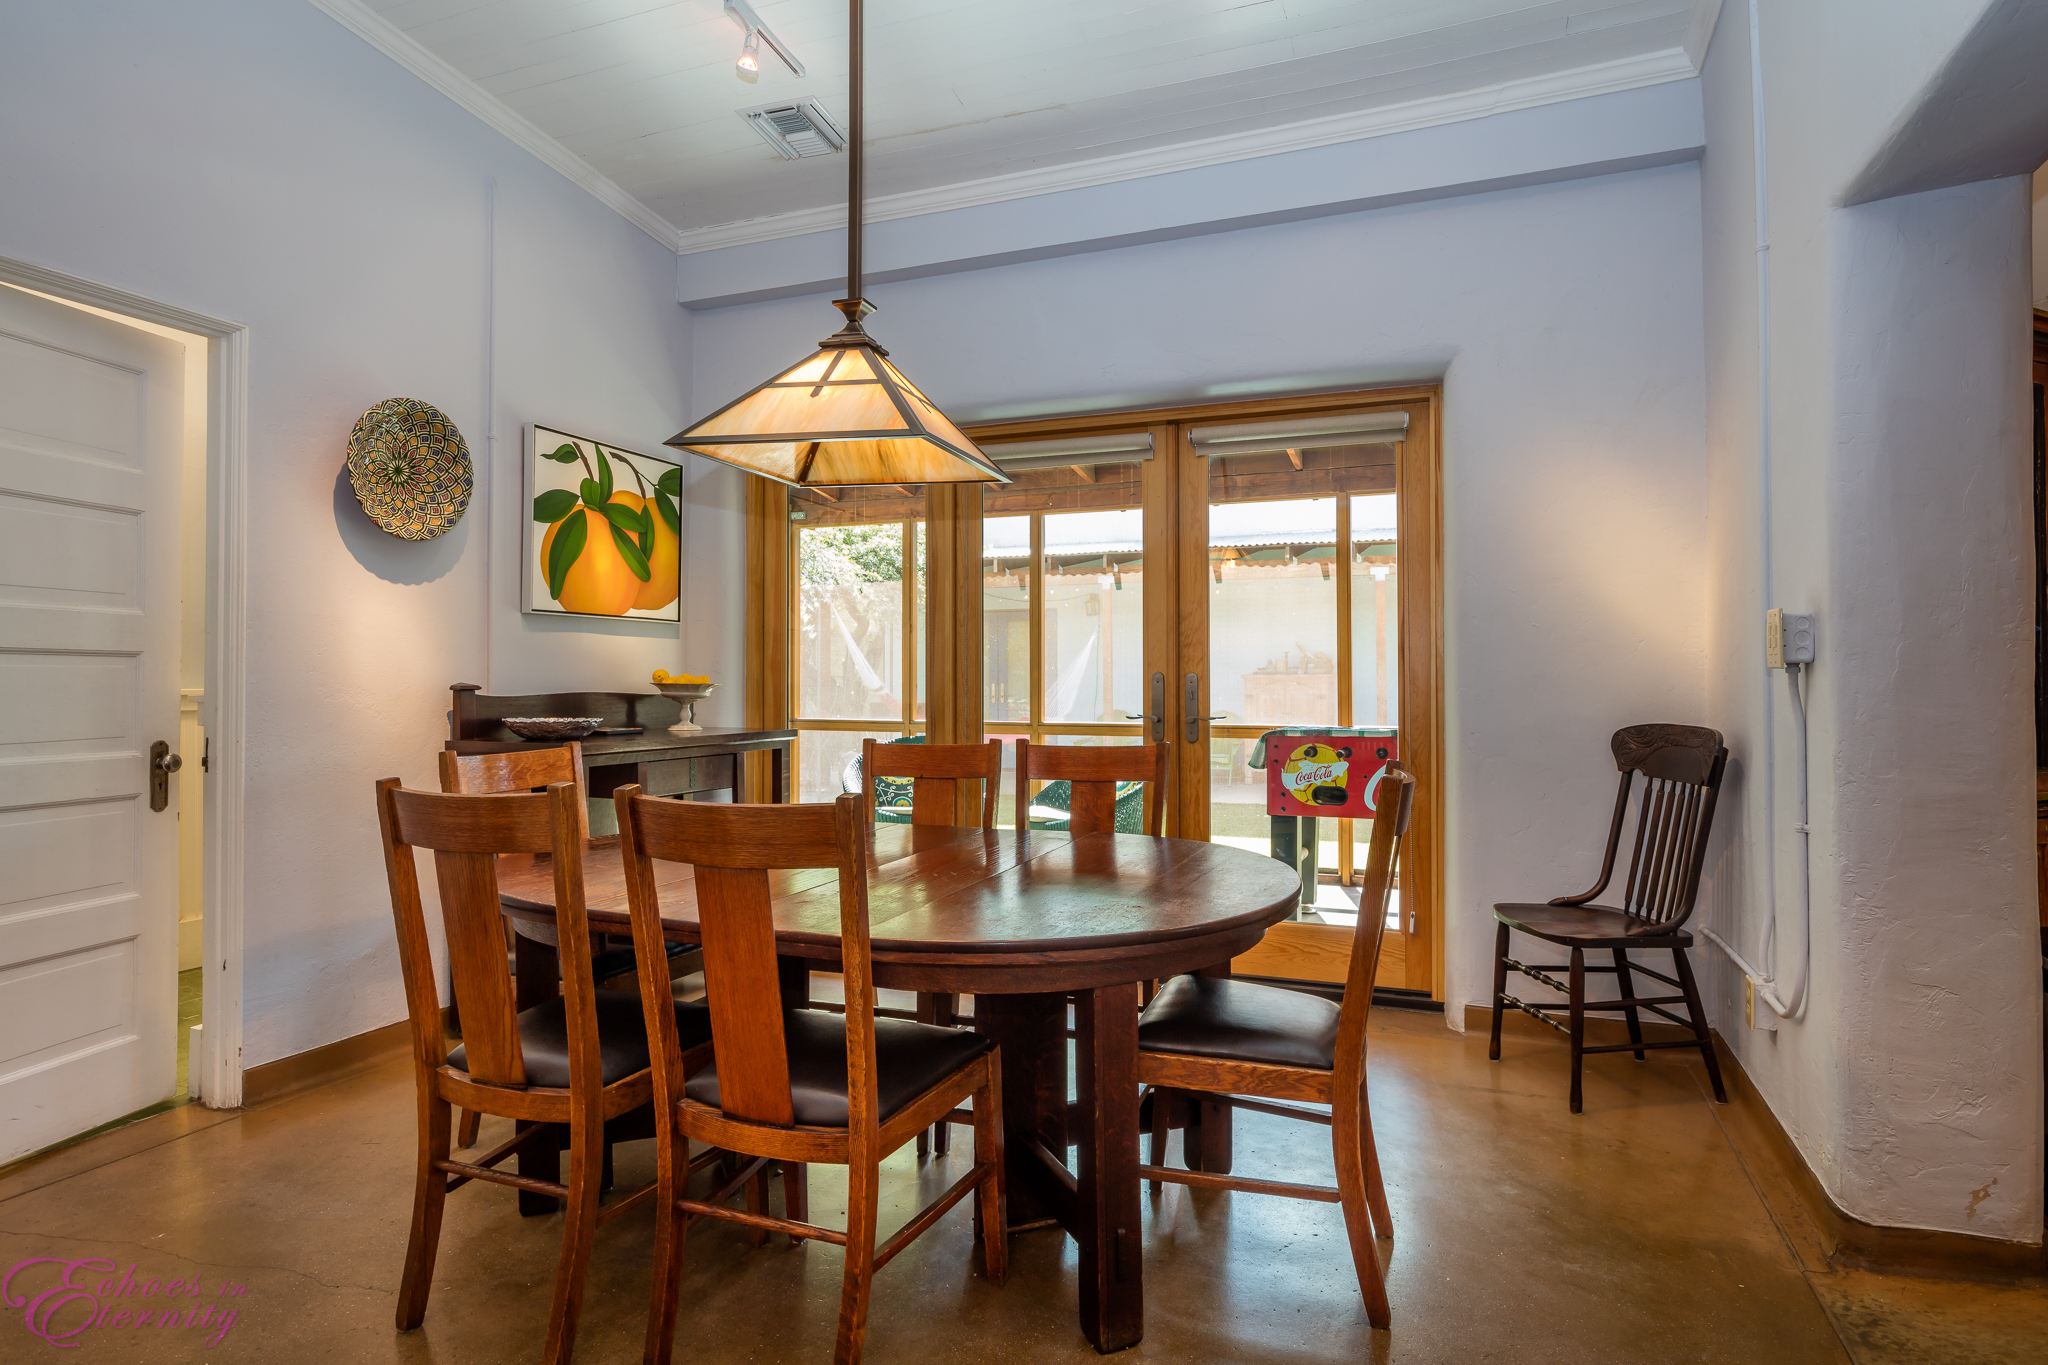 Professional Photos Tucson Arizona Rental Real Estate Photography Airbnb VRBO 05.jpg